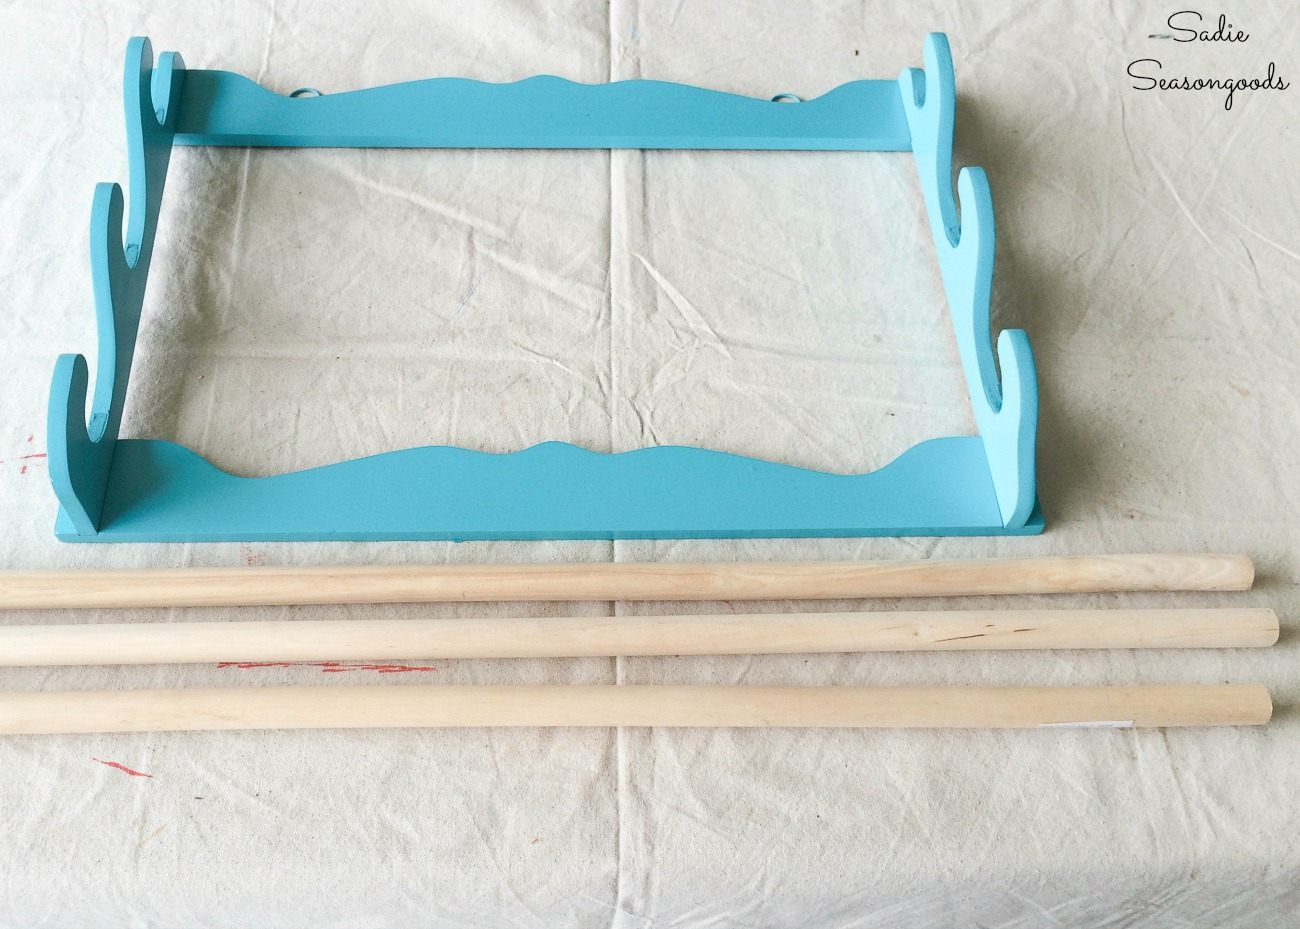 Wooden dowels to go in a hanging gun rack for scrap fabric